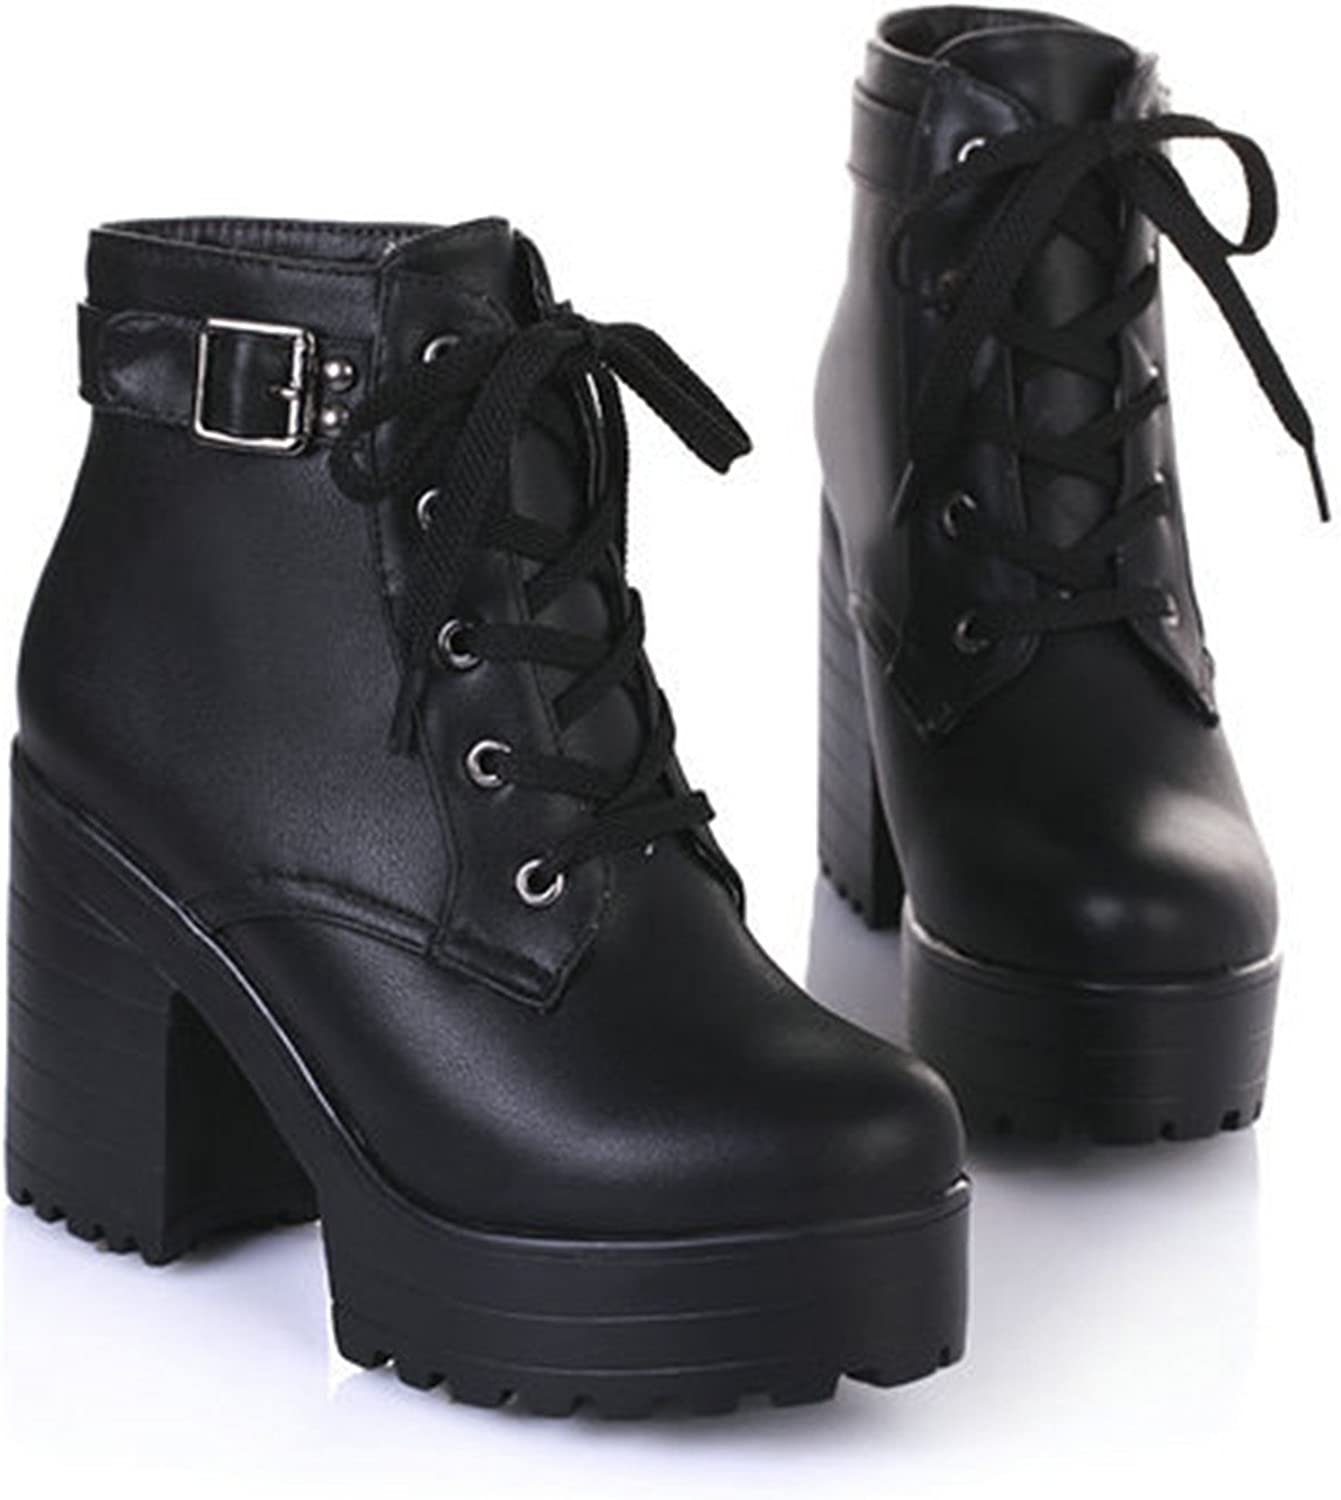 Dahanyi Stylish New Women Ankle Boots Round Toe Platform Buckle Square High Boots for Women Fashion Winter Punk shoes Size 34-43